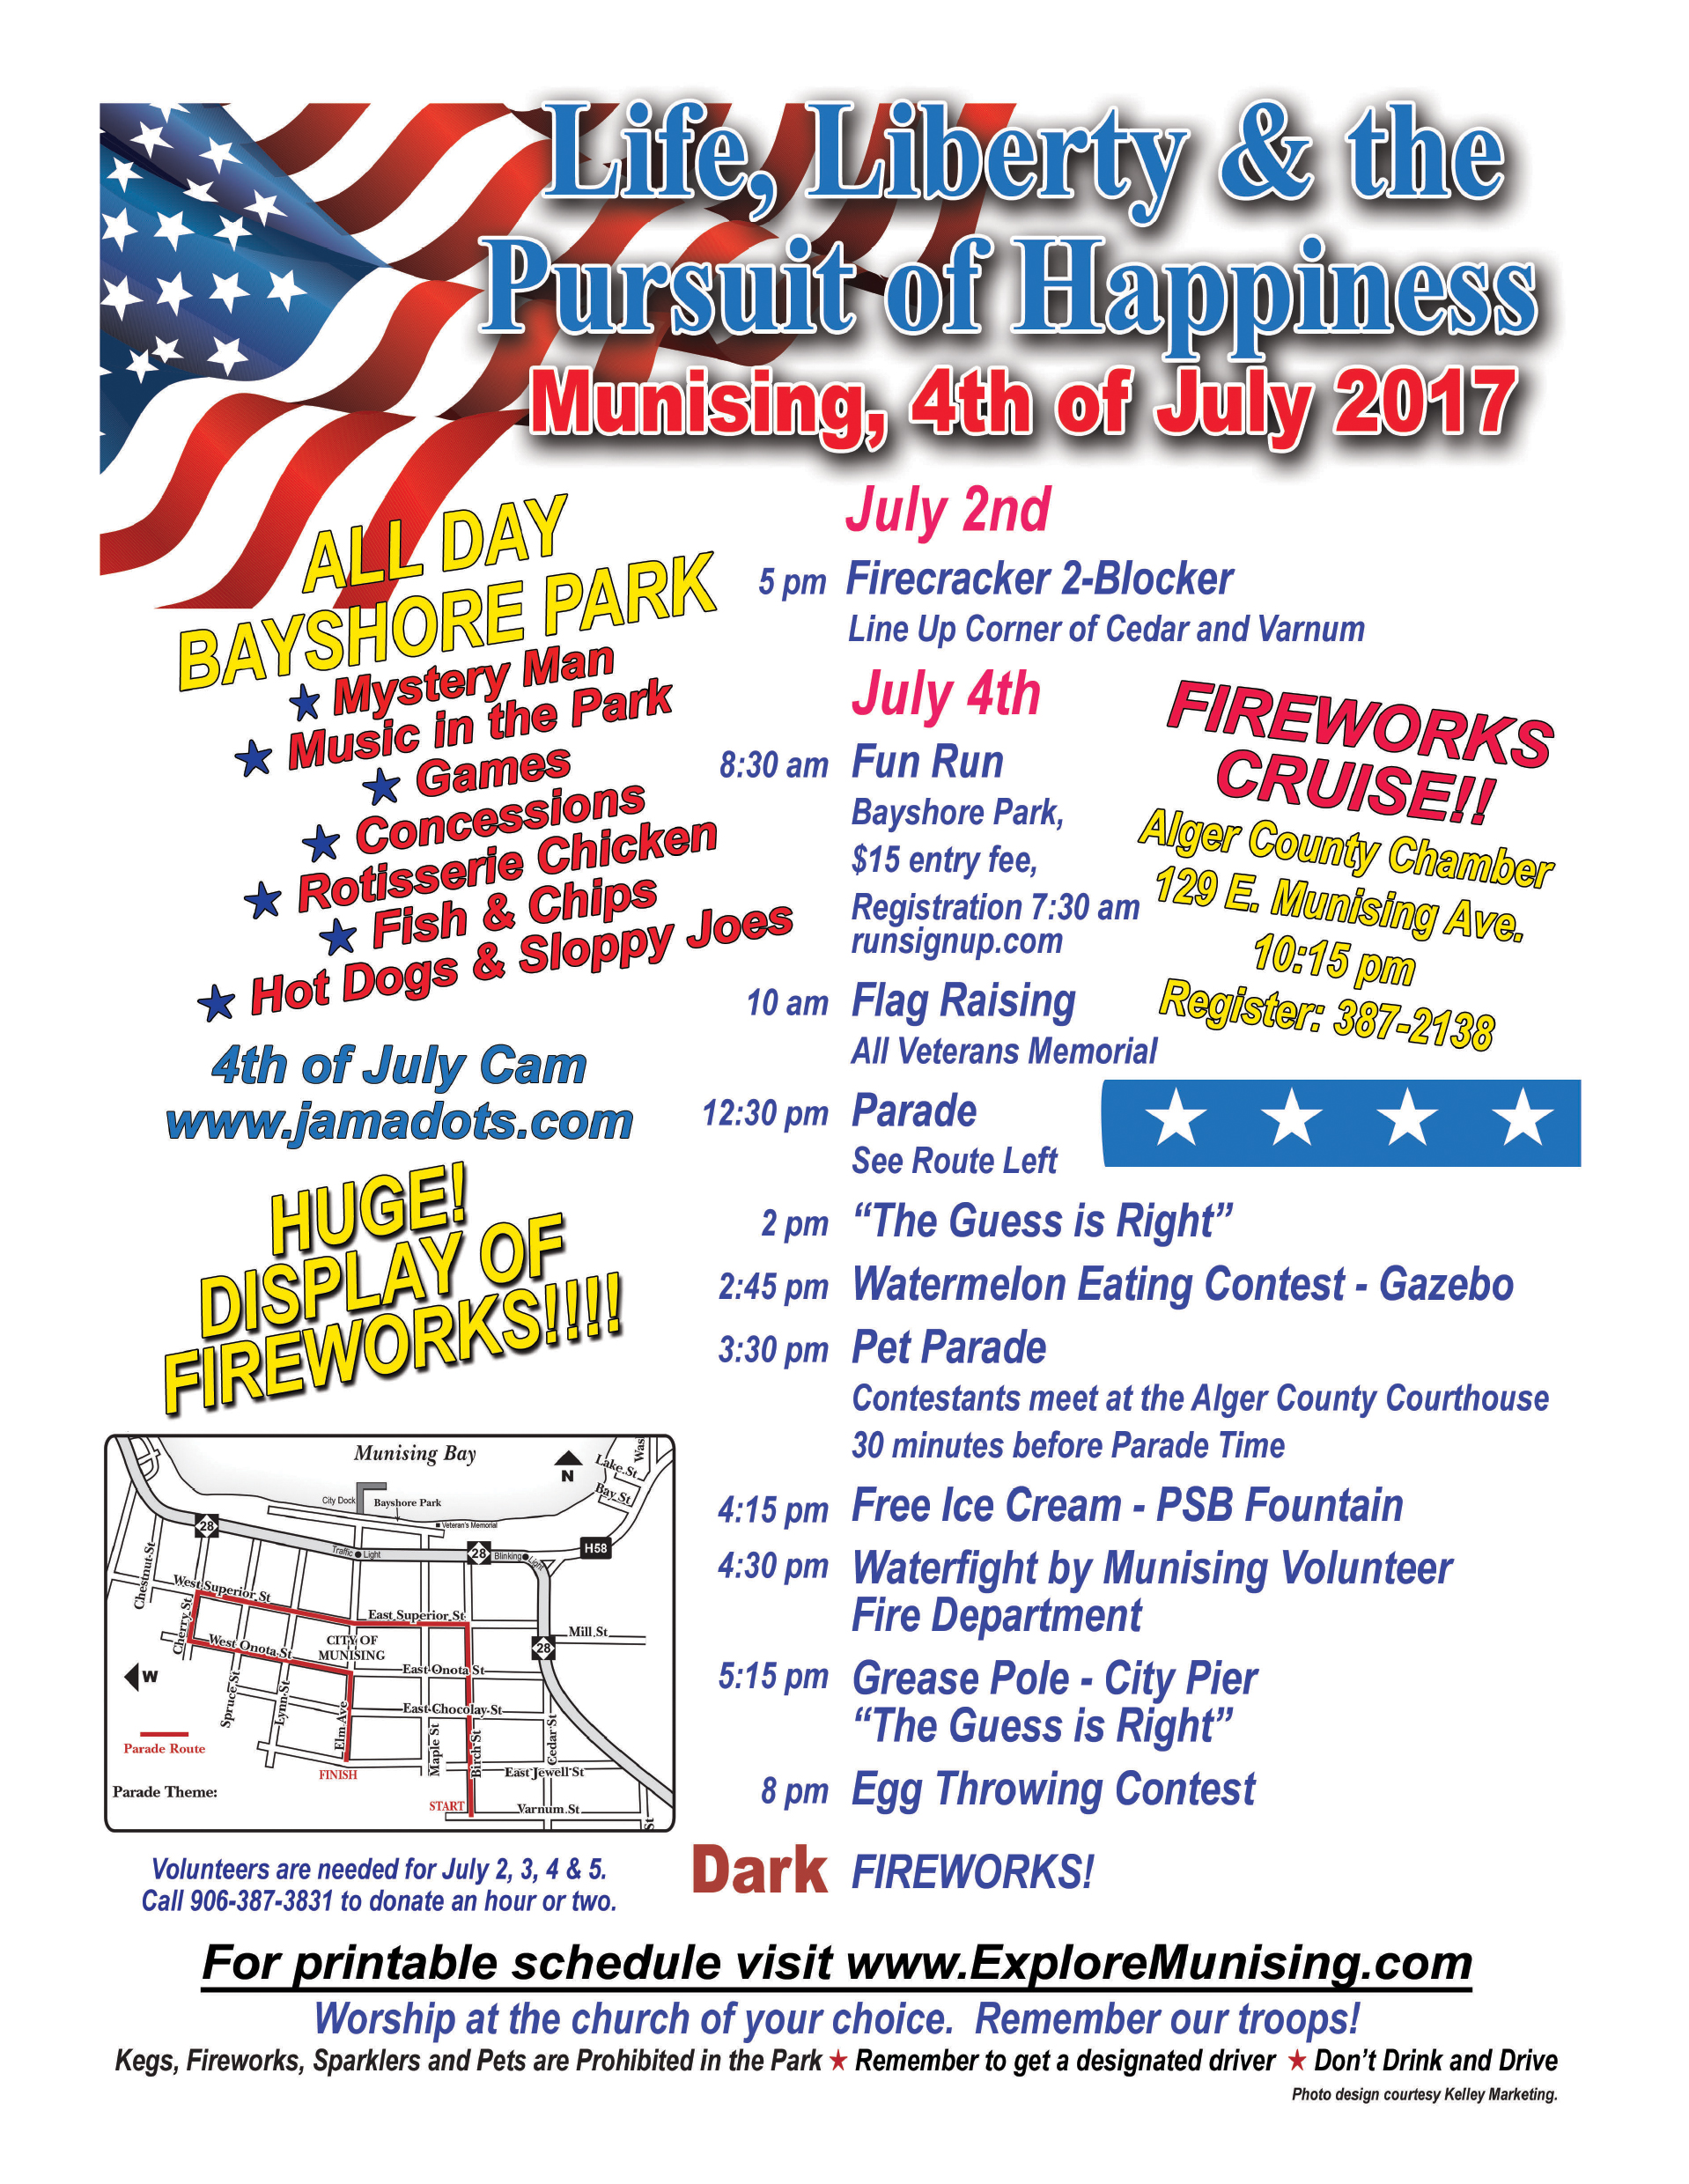 Michigan alger county munising - Fun Run Flag Raising Parade Food Games Music And The Best Fireworks At Dusk On The Bay